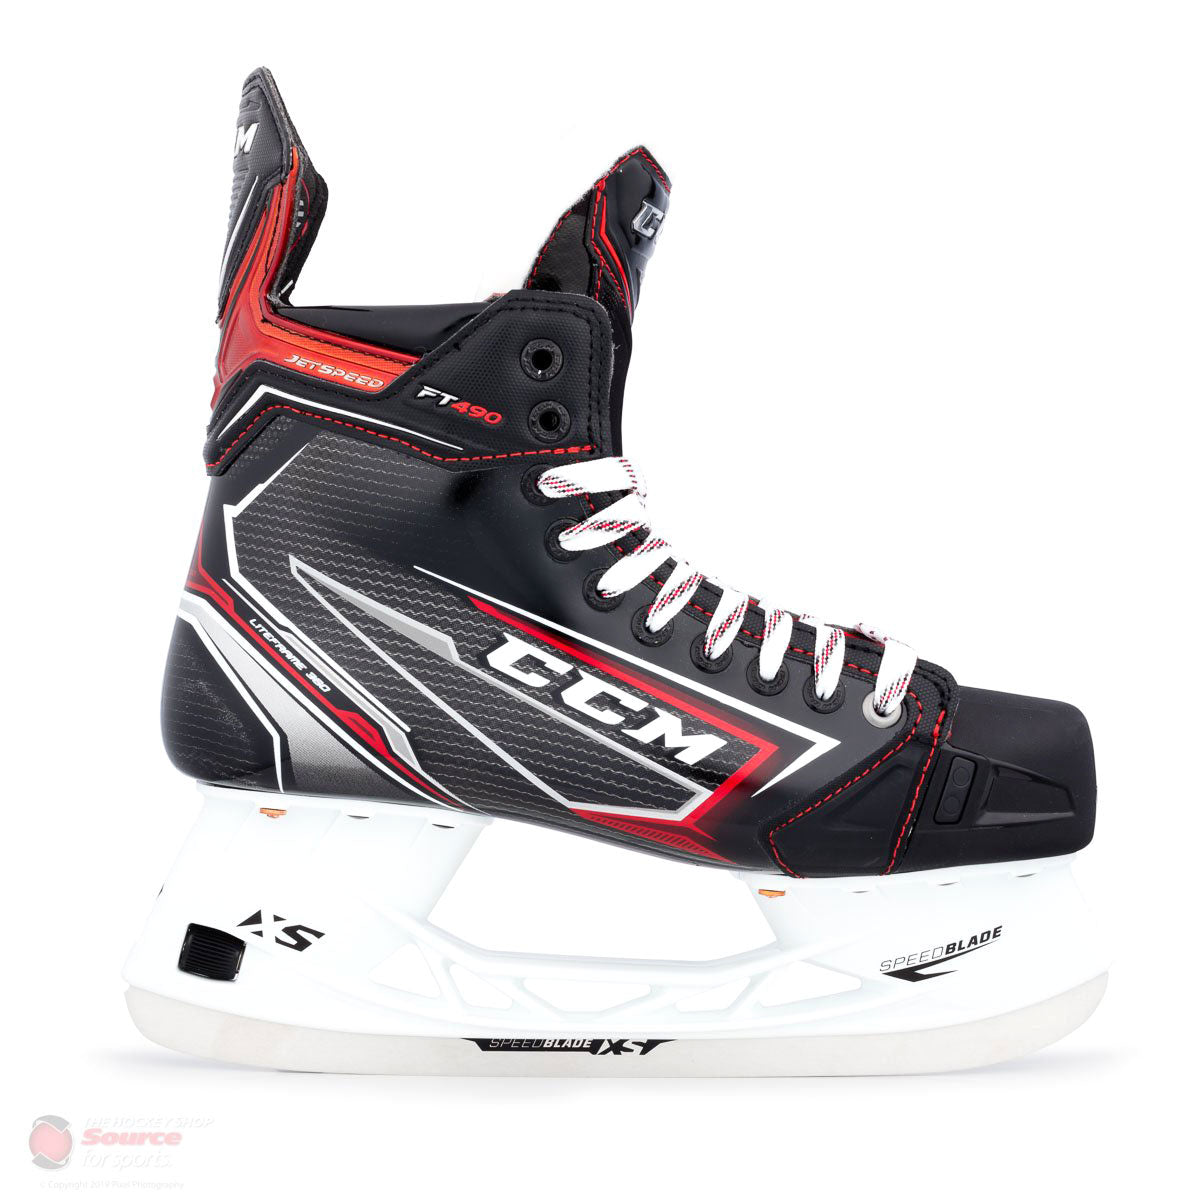 CCM Jetspeed FT490 Senior Hockey Skates